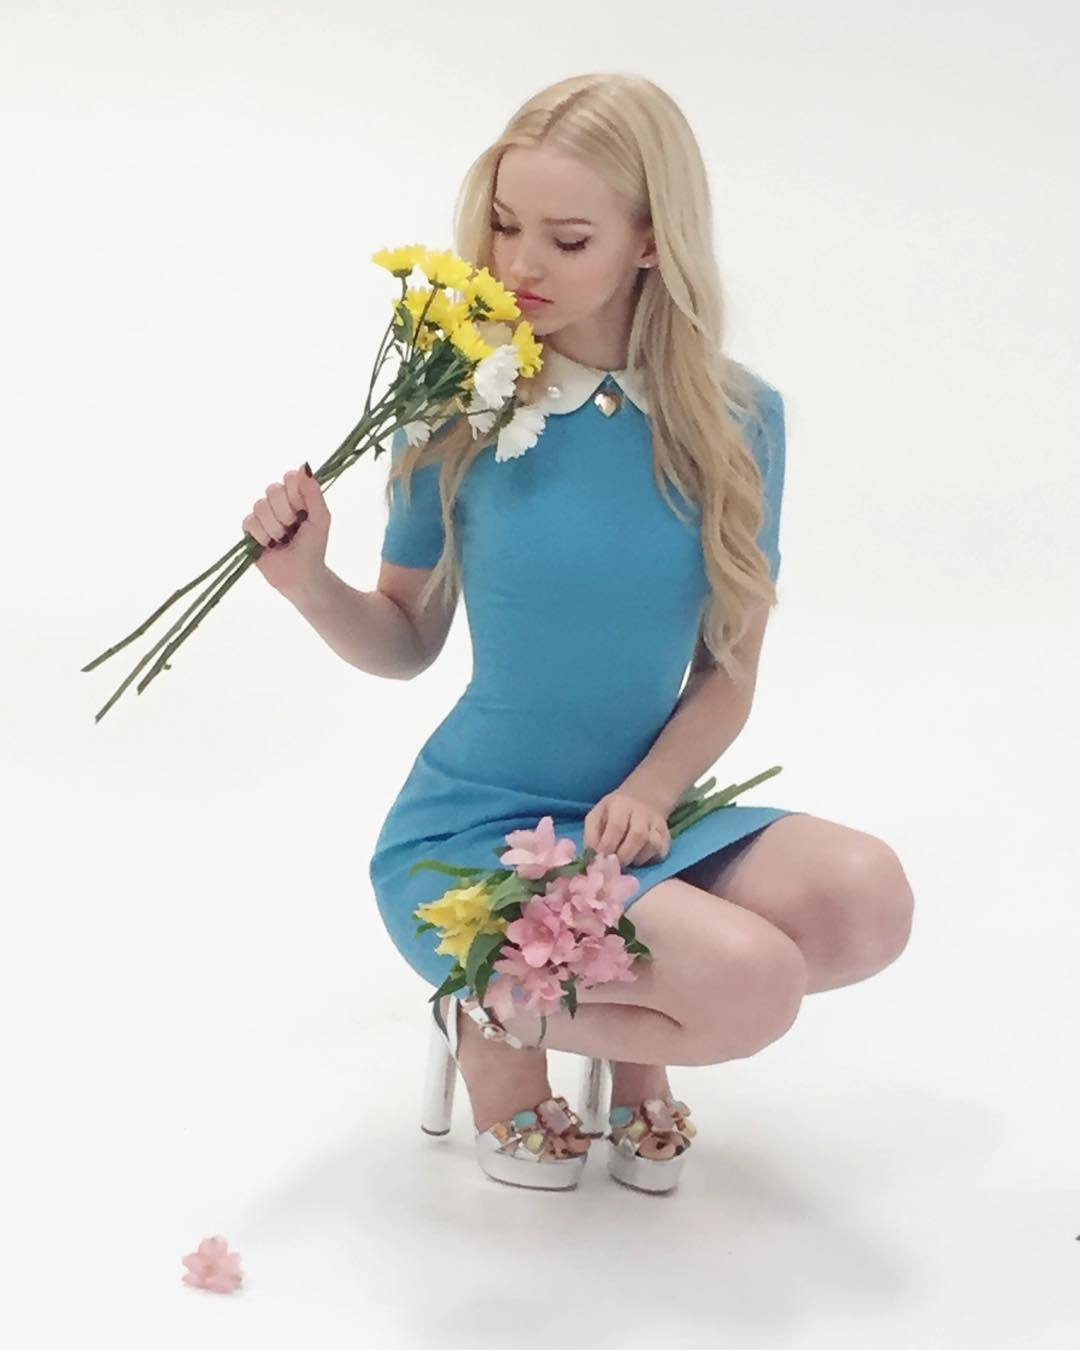 Feet Dove Cameron nudes (93 pics) Fappening, Facebook, see through